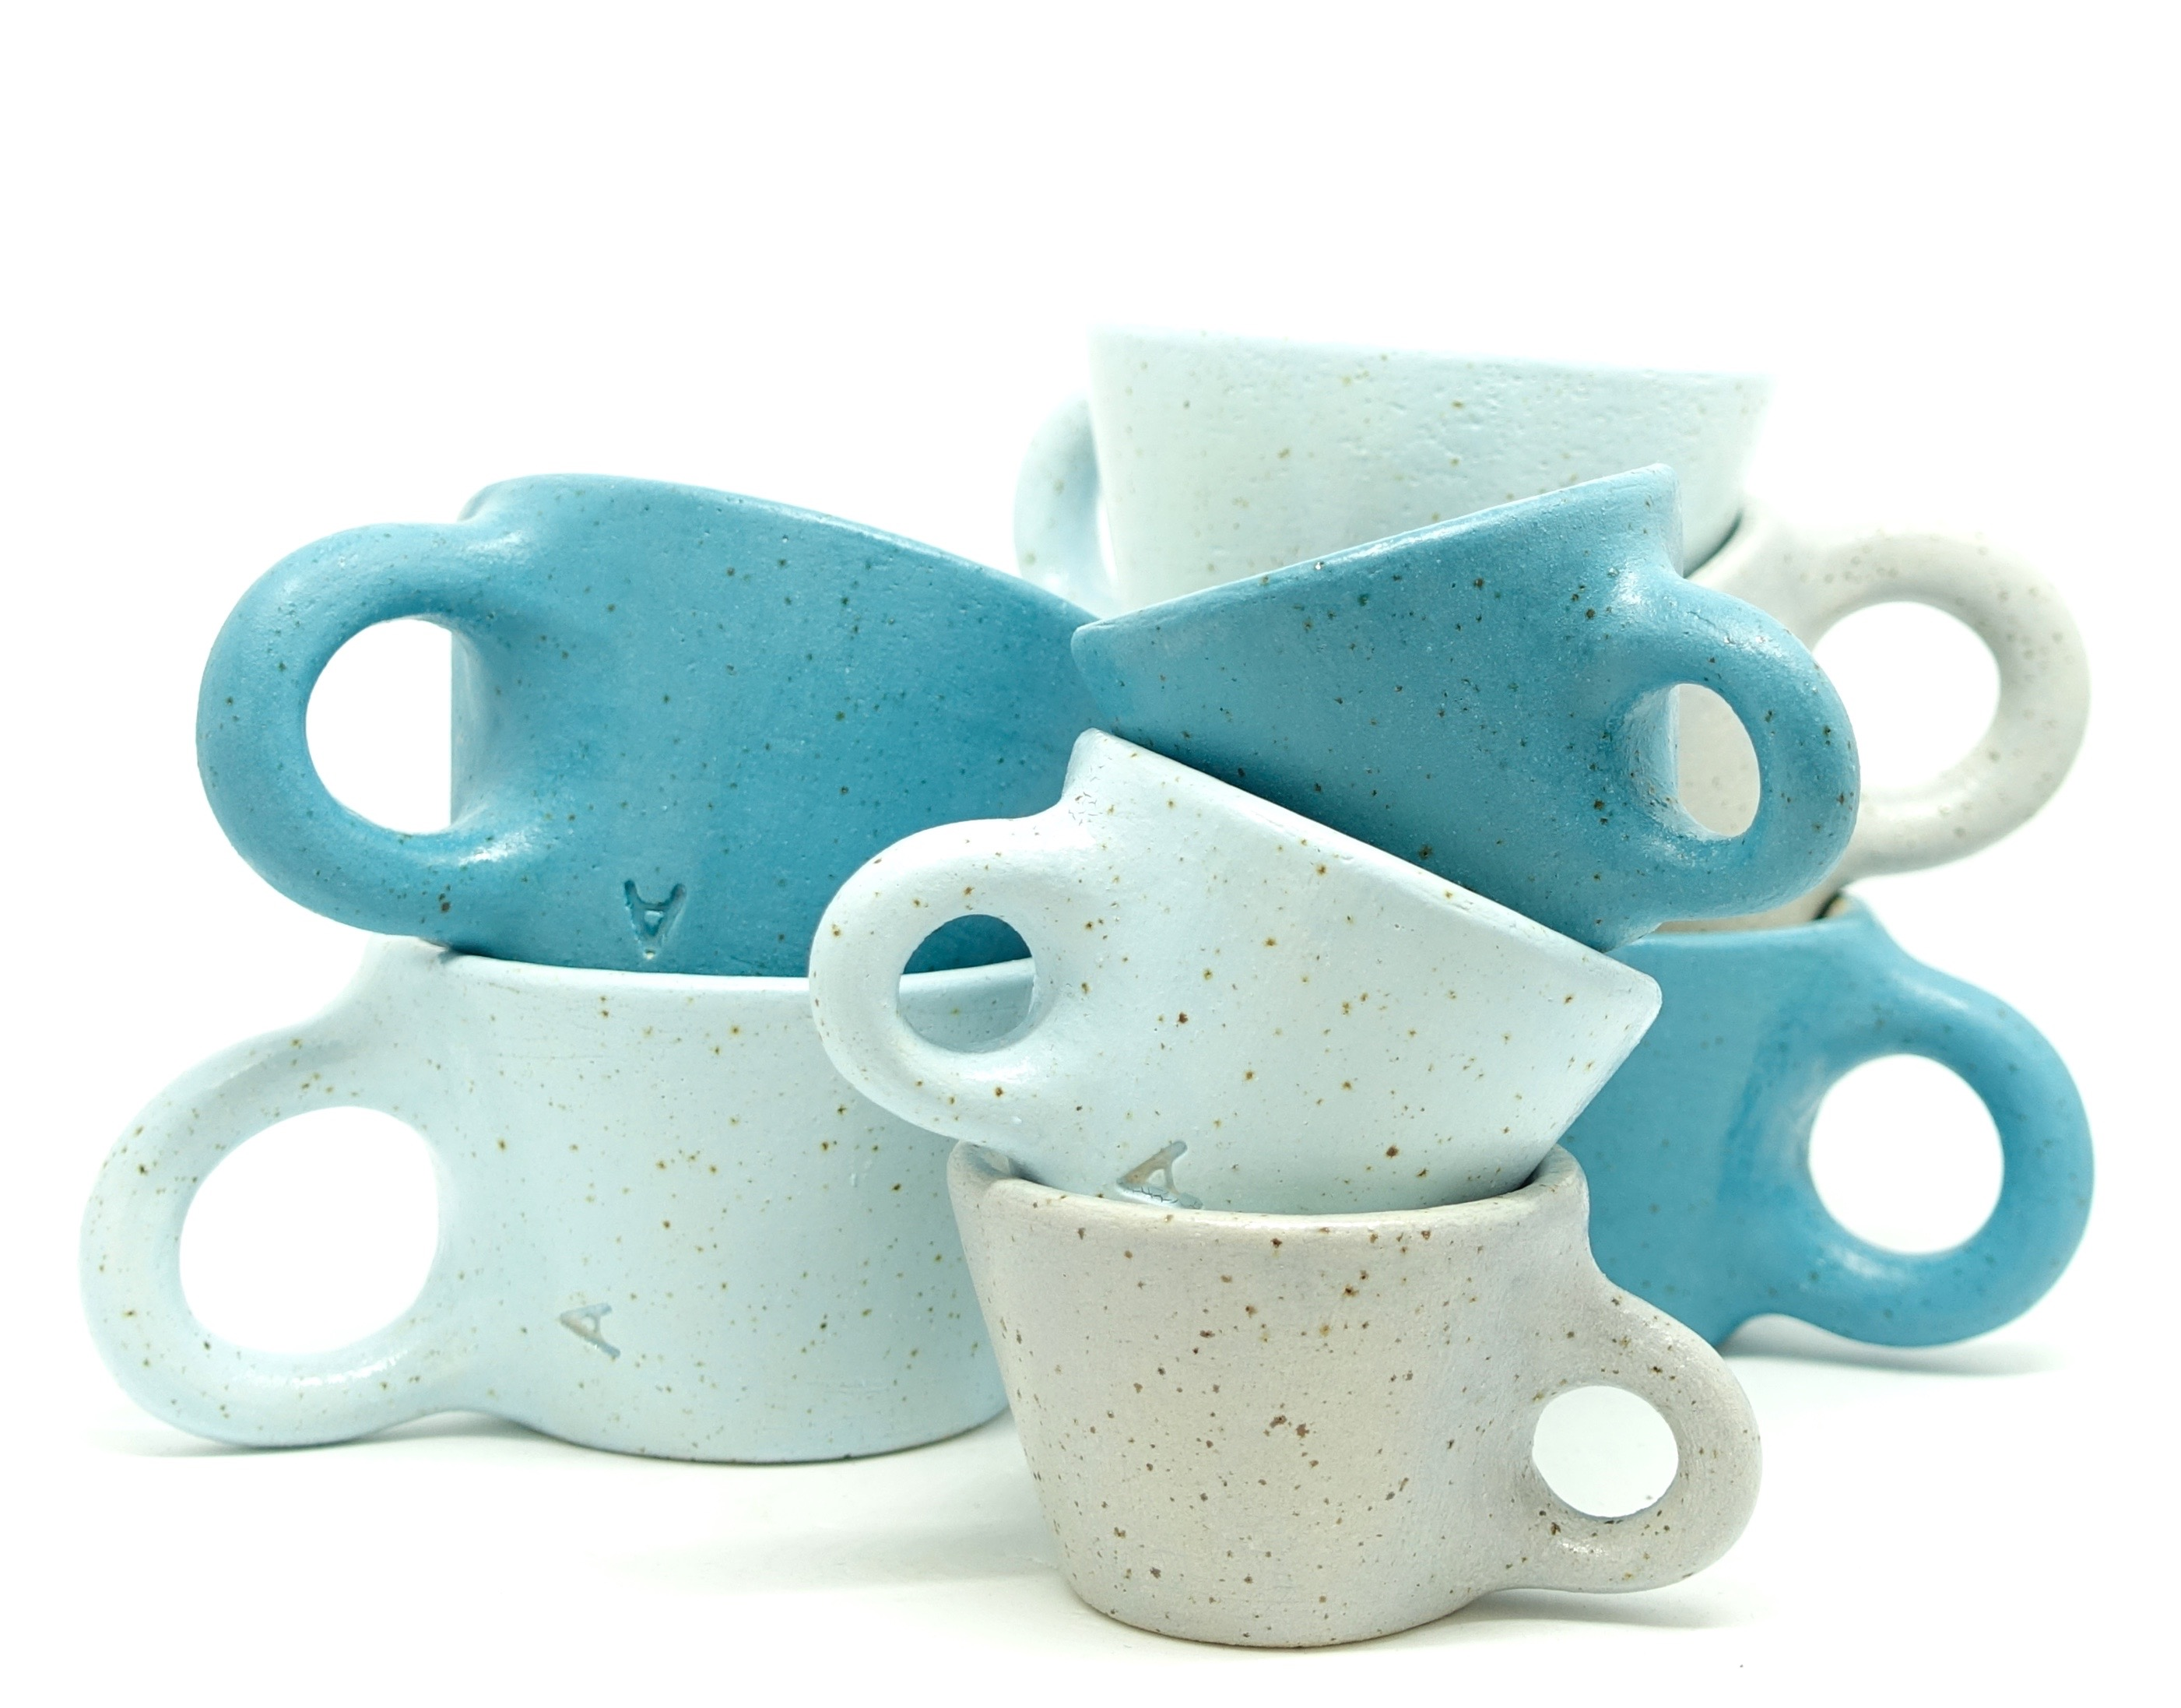 Turquoise and pale blue cups